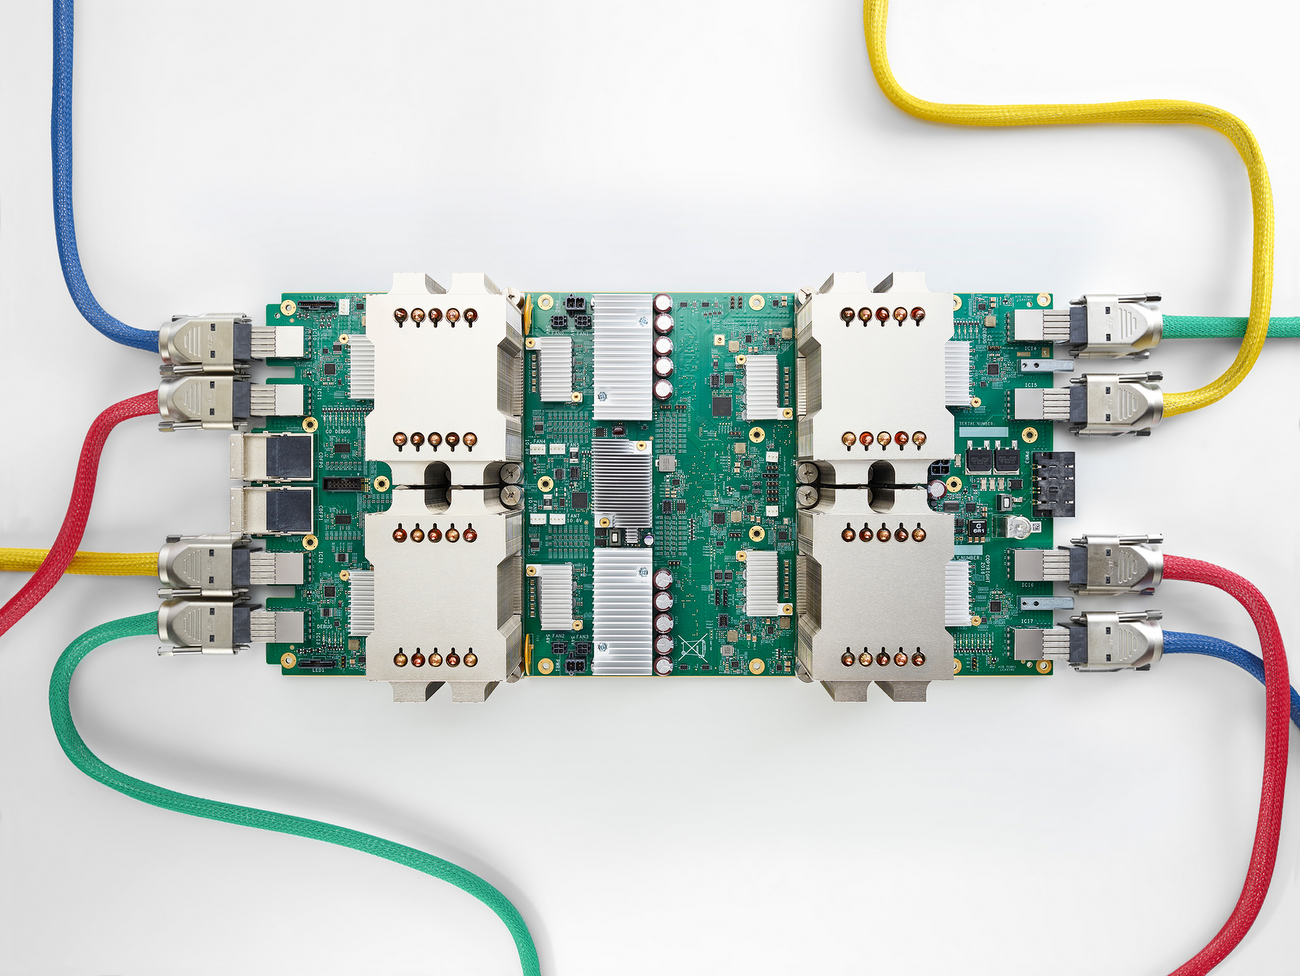 Build And Train Machine Learning Models On Our New Google Cloud Tpus Mr Electrical Electronics Projects For Dummies